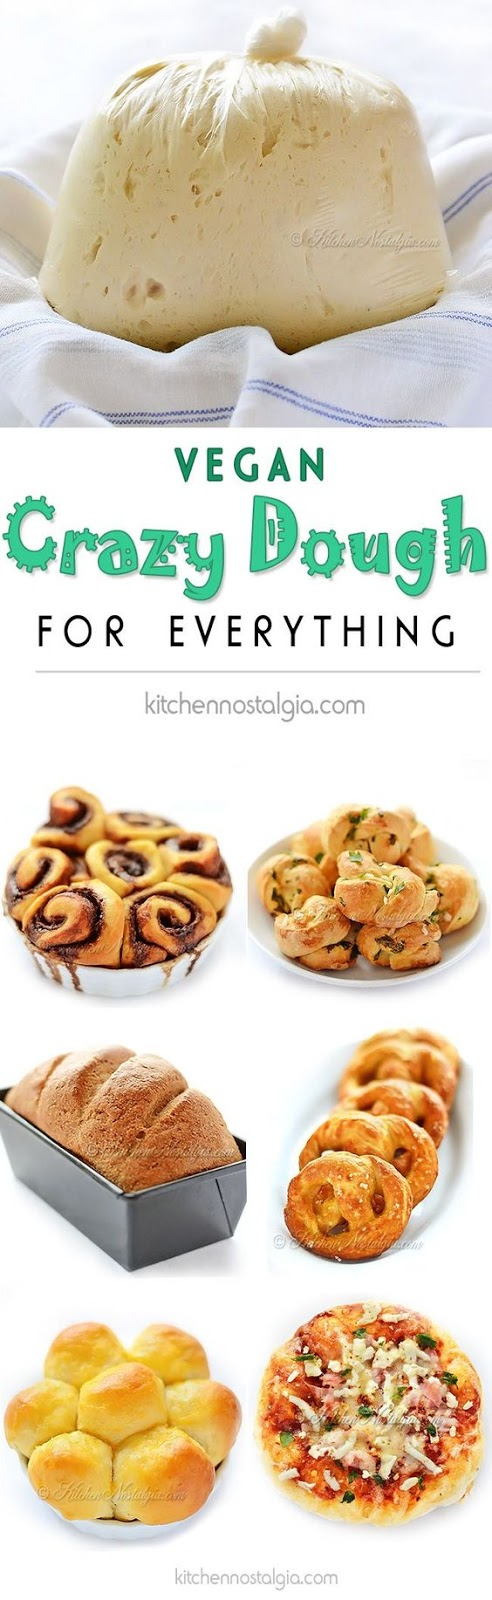 VEGAN CRAZY DOUGH #VEGAN #CRAZY #DOUGH   #DESSERTS #HEALTHYFOOD #EASY_RECIPES #DINNER #LAUCH #DELICIOUS #EASY #HOLIDAYS #RECIPE #SPECIAL_DIET #WORLD_CUISINE #CAKE #GRILL #APPETIZERS #HEALTHY_RECIPES #DRINKS #COOKING_METHOD #ITALIAN_RECIPES #MEAT #VEGAN_RECIPES #COOKIES #PASTA #FRUIT #SALAD #SOUP_APPETIZERS #NON_ALCOHOLIC_DRINKS #MEAL_PLANNING #VEGETABLES #SOUP #PASTRY #CHOCOLATE #DAIRY #ALCOHOLIC_DRINKS #BULGUR_SALAD #BAKING #SNACKS #BEEF_RECIPES #MEAT_APPETIZERS #MEXICAN_RECIPES #BREAD #ASIAN_RECIPES #SEAFOOD_APPETIZERS #MUFFINS #BREAKFAST_AND_BRUNCH #CONDIMENTS #CUPCAKES #CHEESE #CHICKEN_RECIPES #PIE #COFFEE #NO_BAKE_DESSERTS #HEALTHY_SNACKS #SEAFOOD #GRAIN #LUNCHES_DINNERS #MEXICAN #QUICK_BREAD #LIQUOR